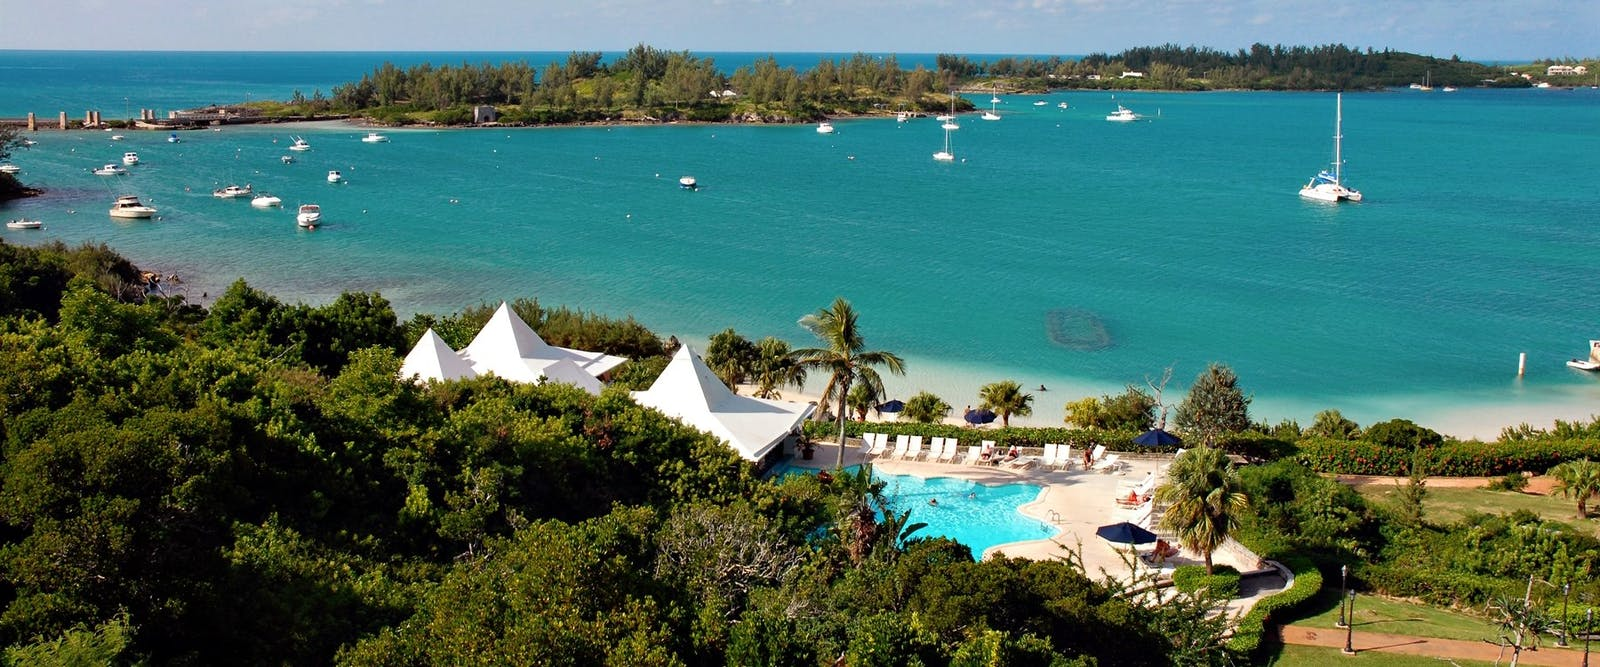 View From the Rooms at Grotto Bay, Bermuda